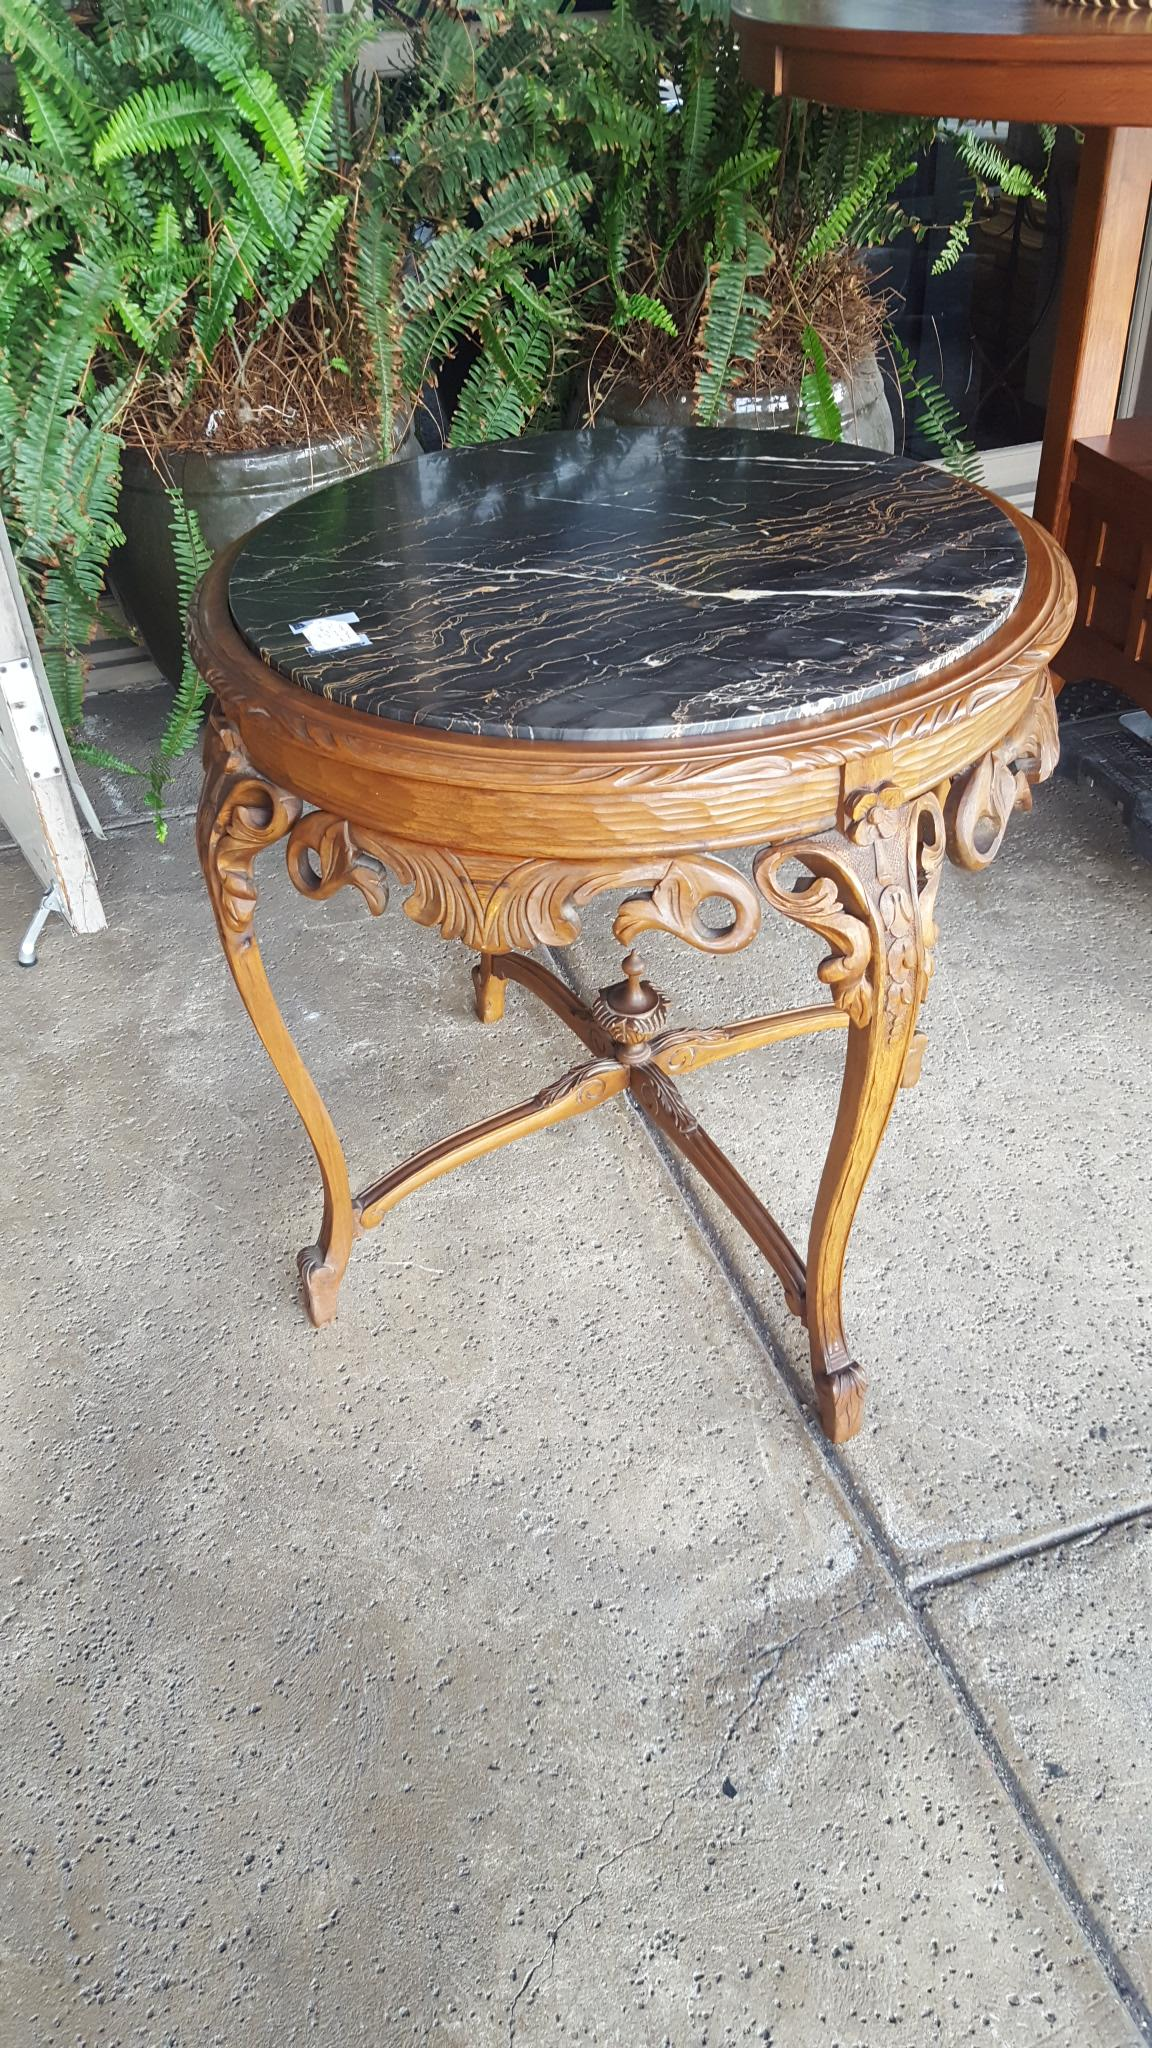 Hang carved antique side table with Furniture Price: $395.00